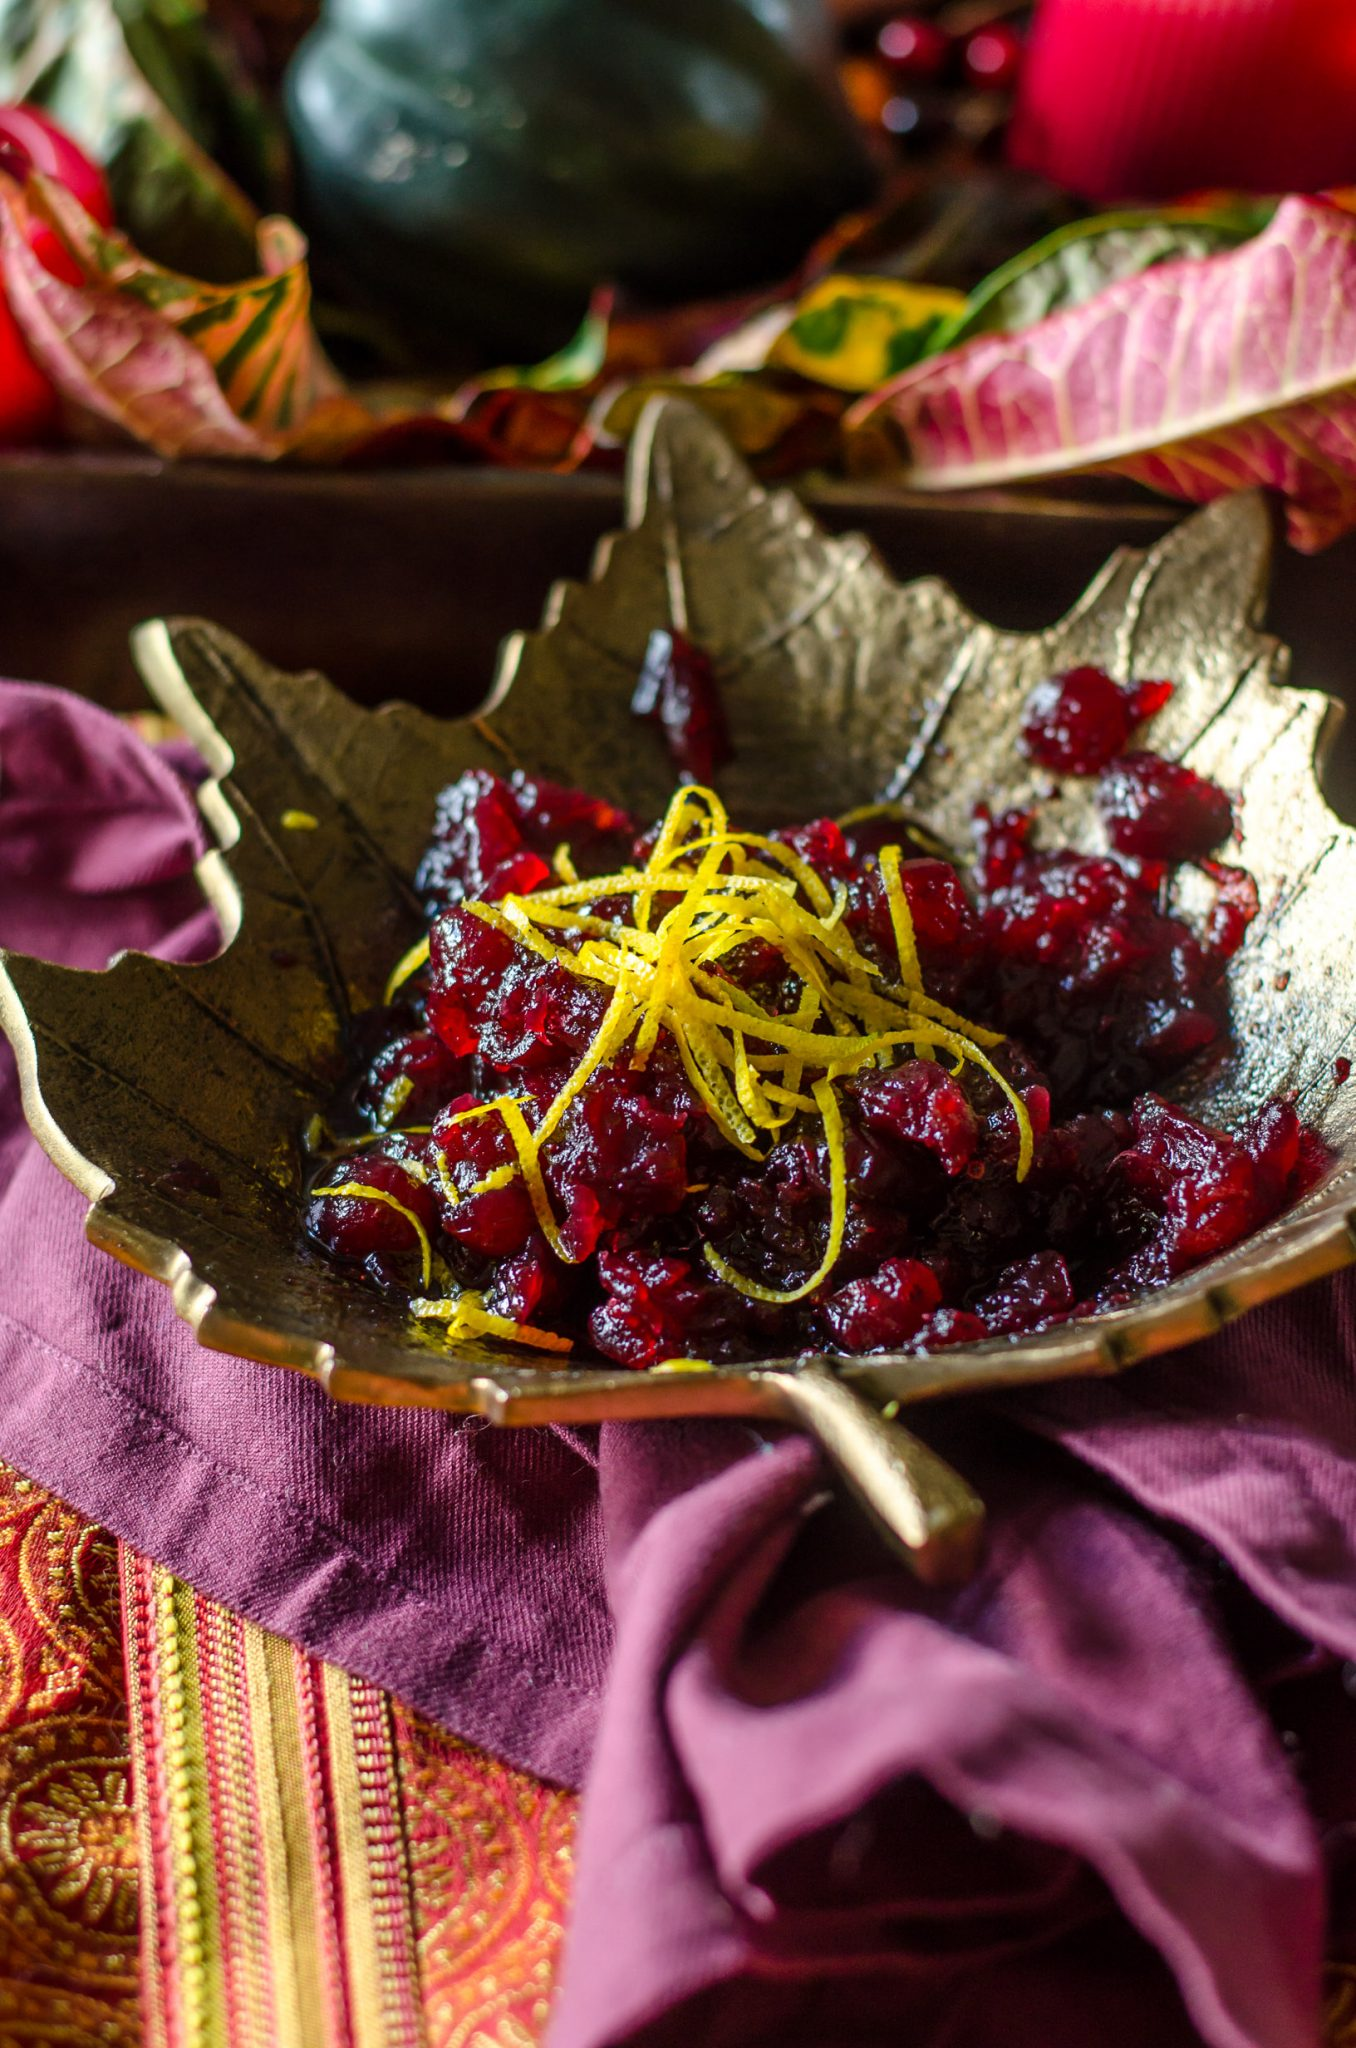 Cranberry sauce topped with orange zest in a leaf bowl